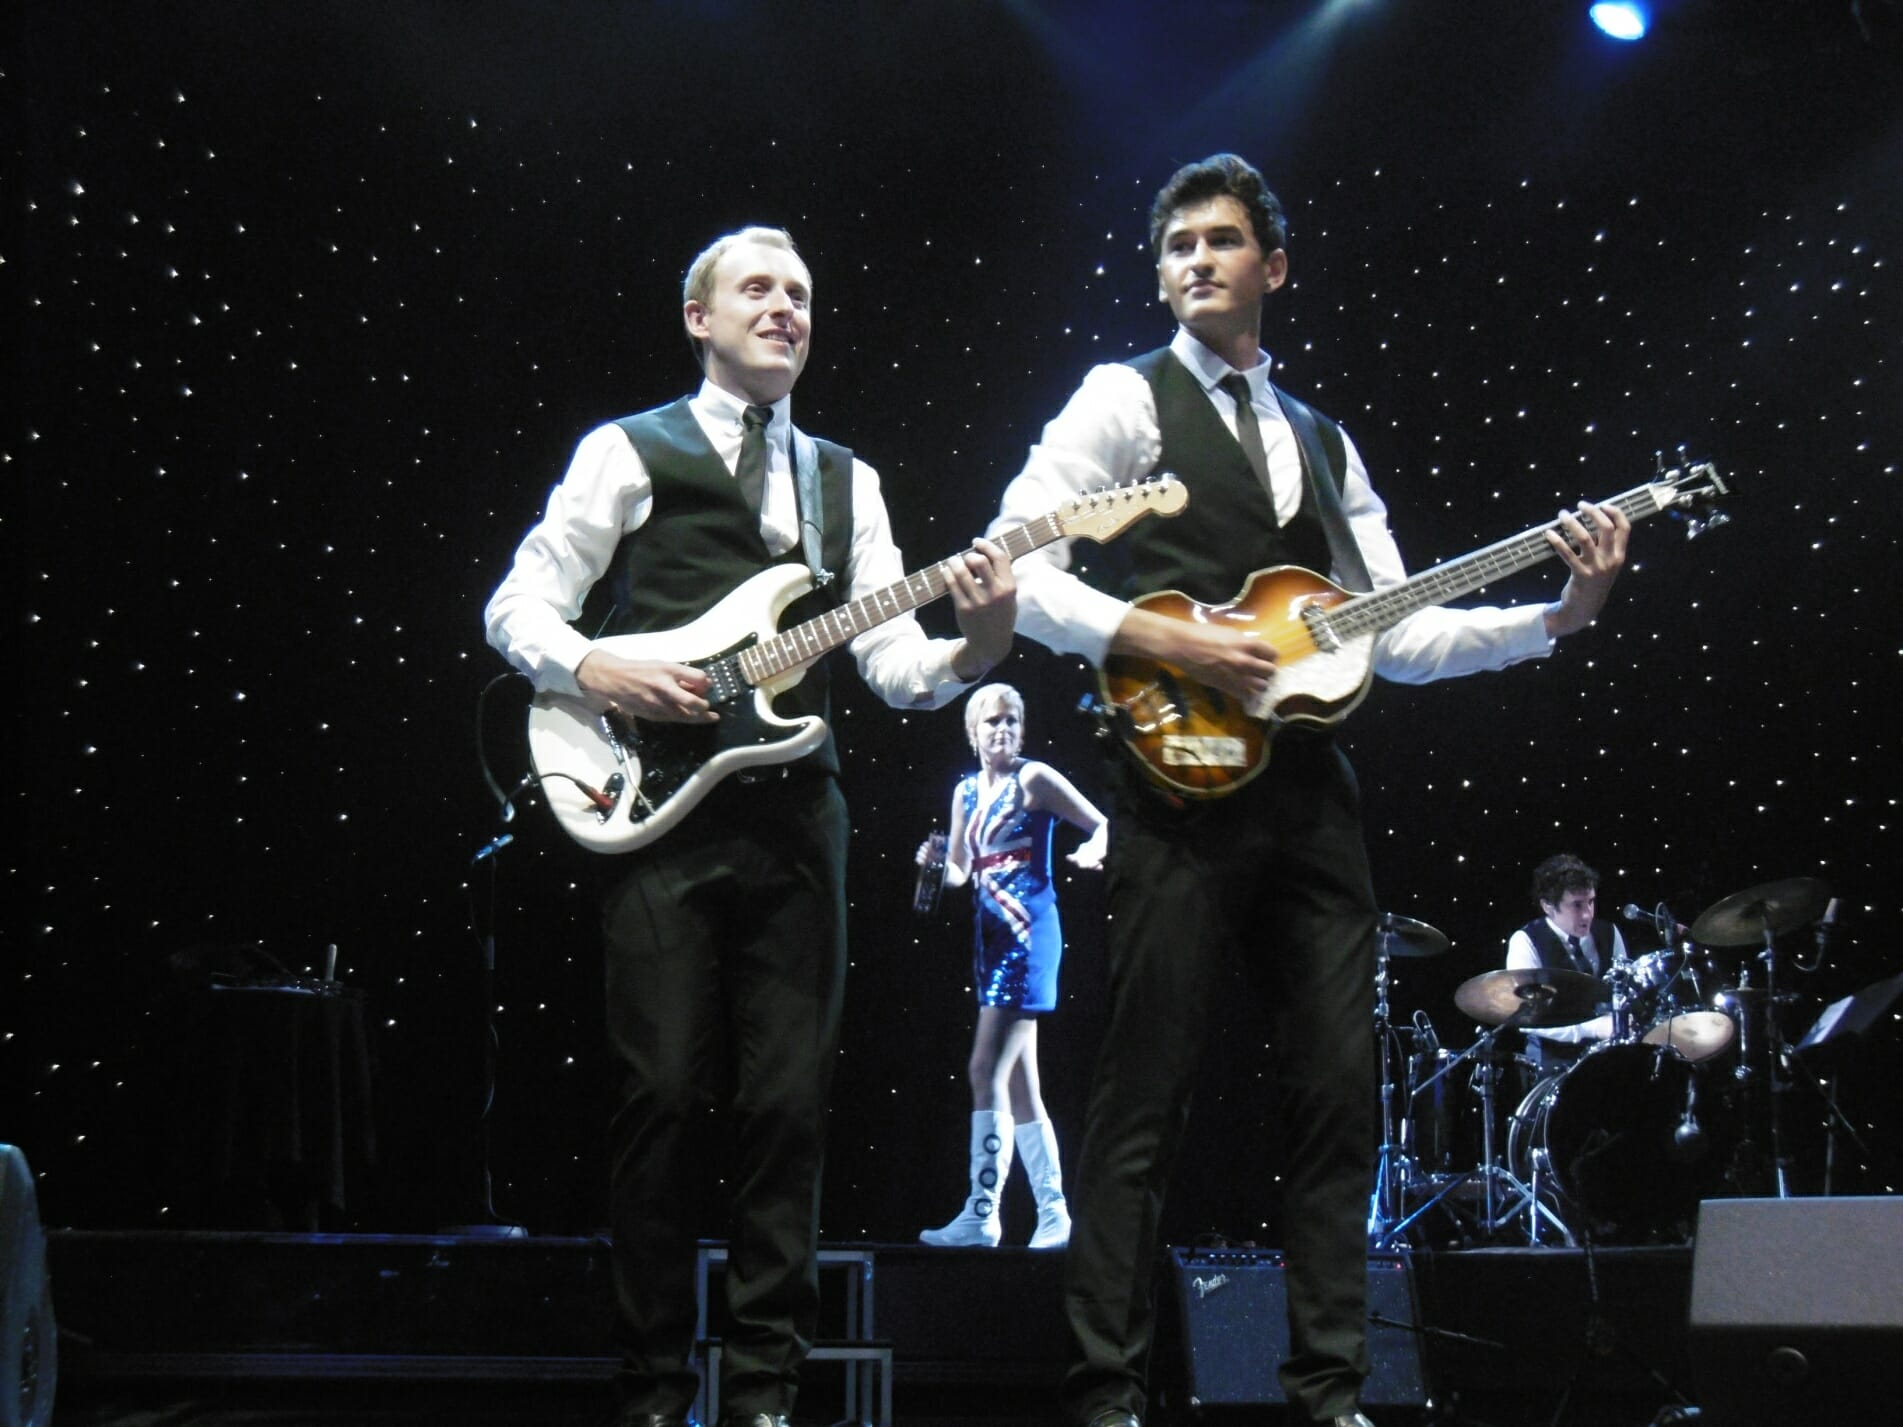 sixities show, sixites tribute, 60s tribute show, best 60s band, best 60s tribute, 1960s tribute, 60s tribute